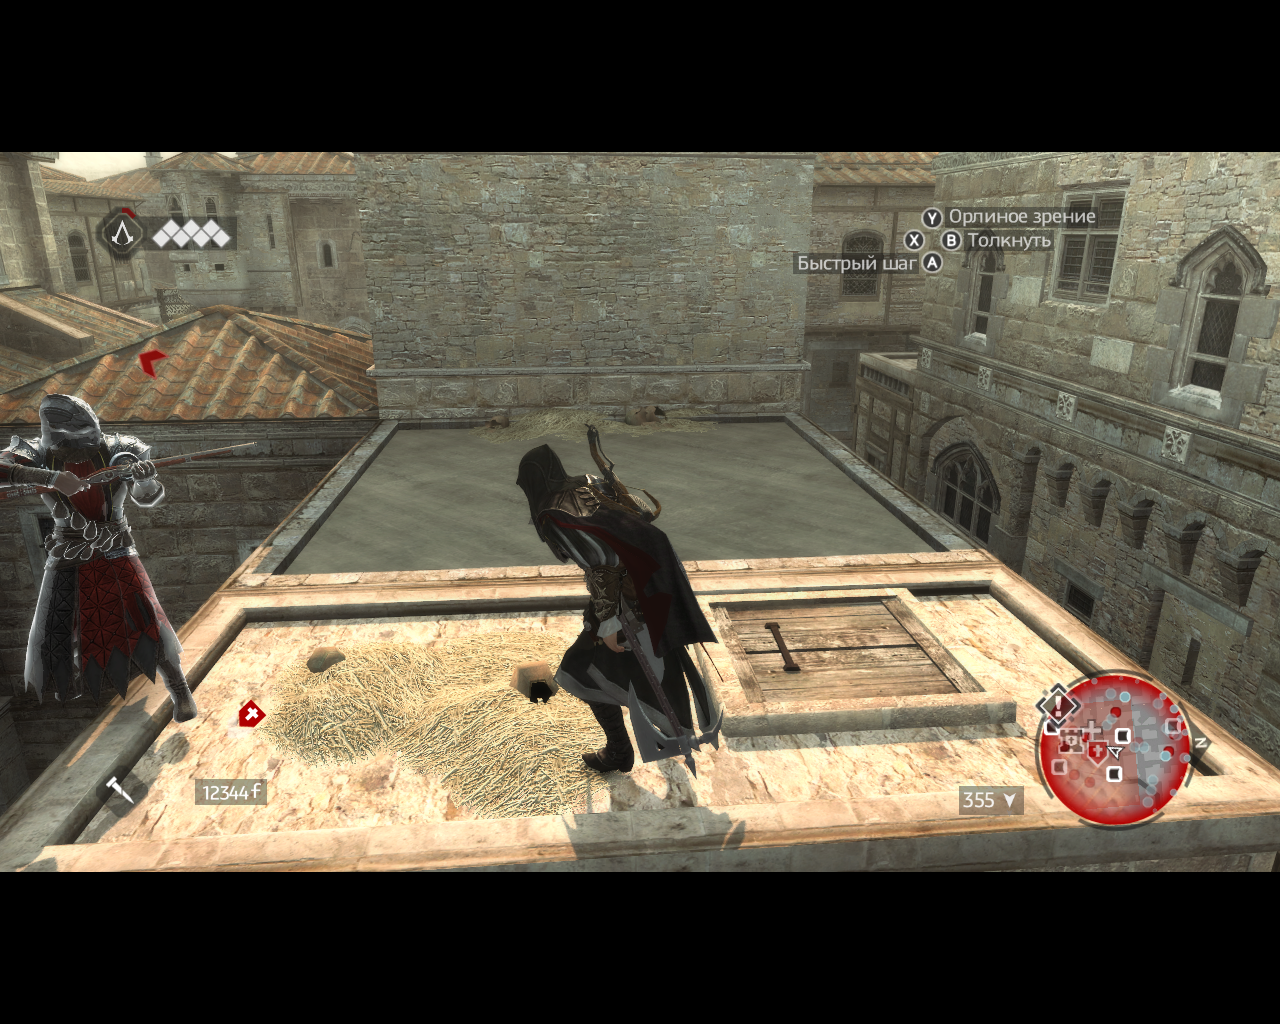 Assassin's Creed: Brotherhood Windows Some soldiers carry guns now